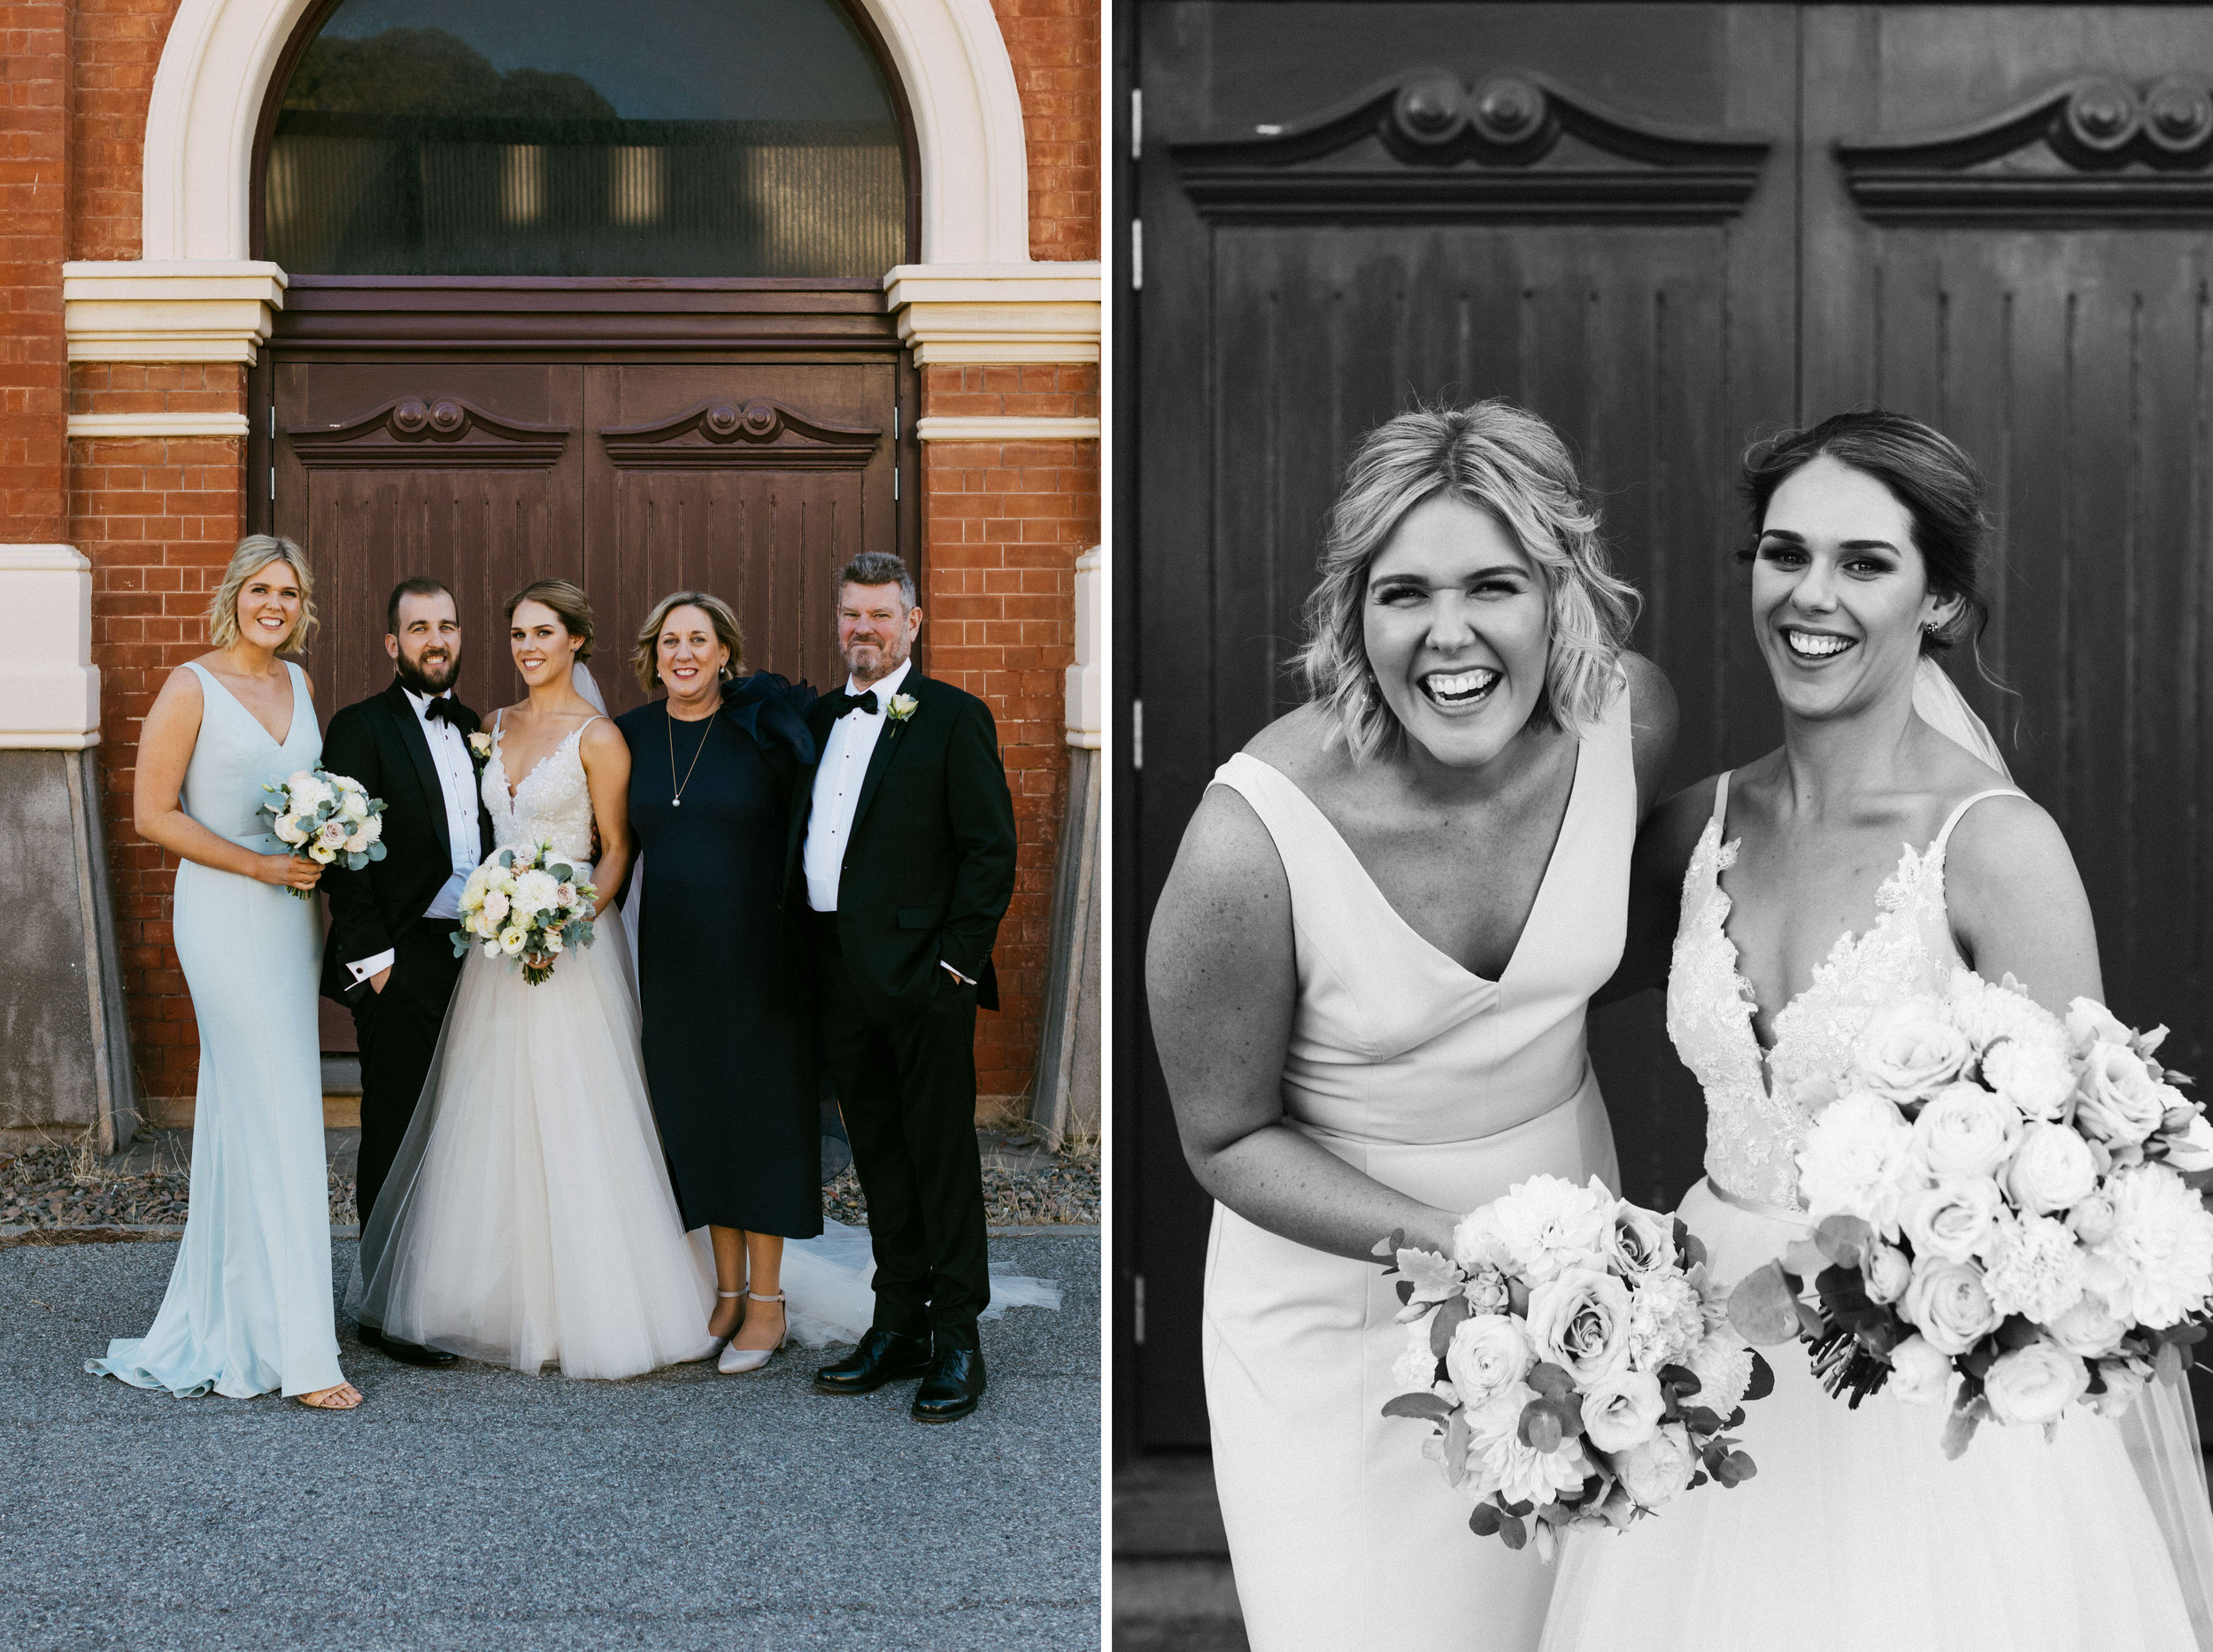 Adelaide Wedding 2019 087.jpg